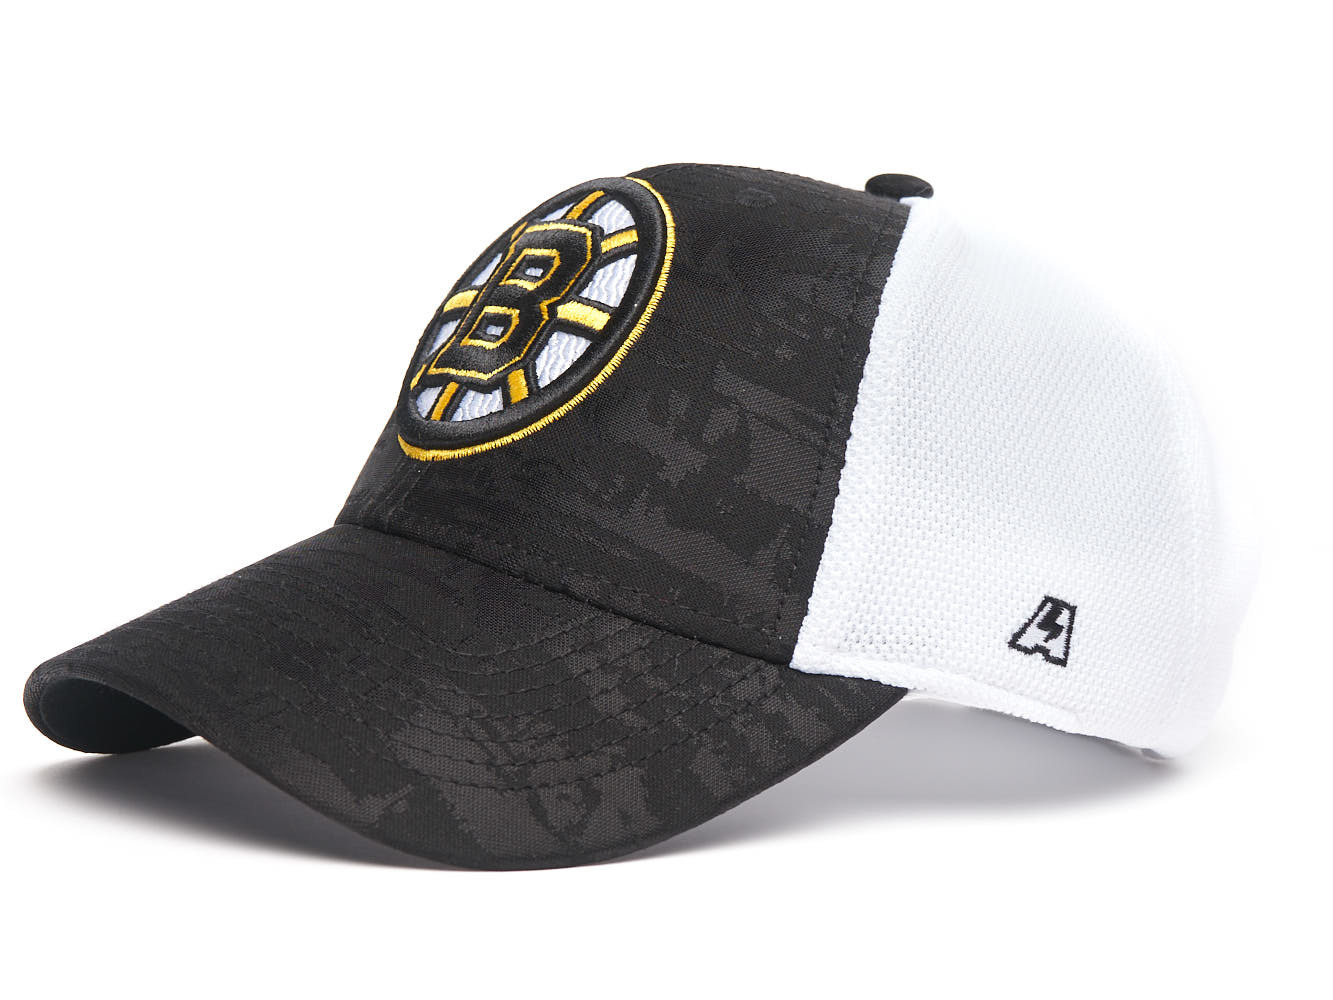 Бейсболка NHL Boston Bruins (размер M)